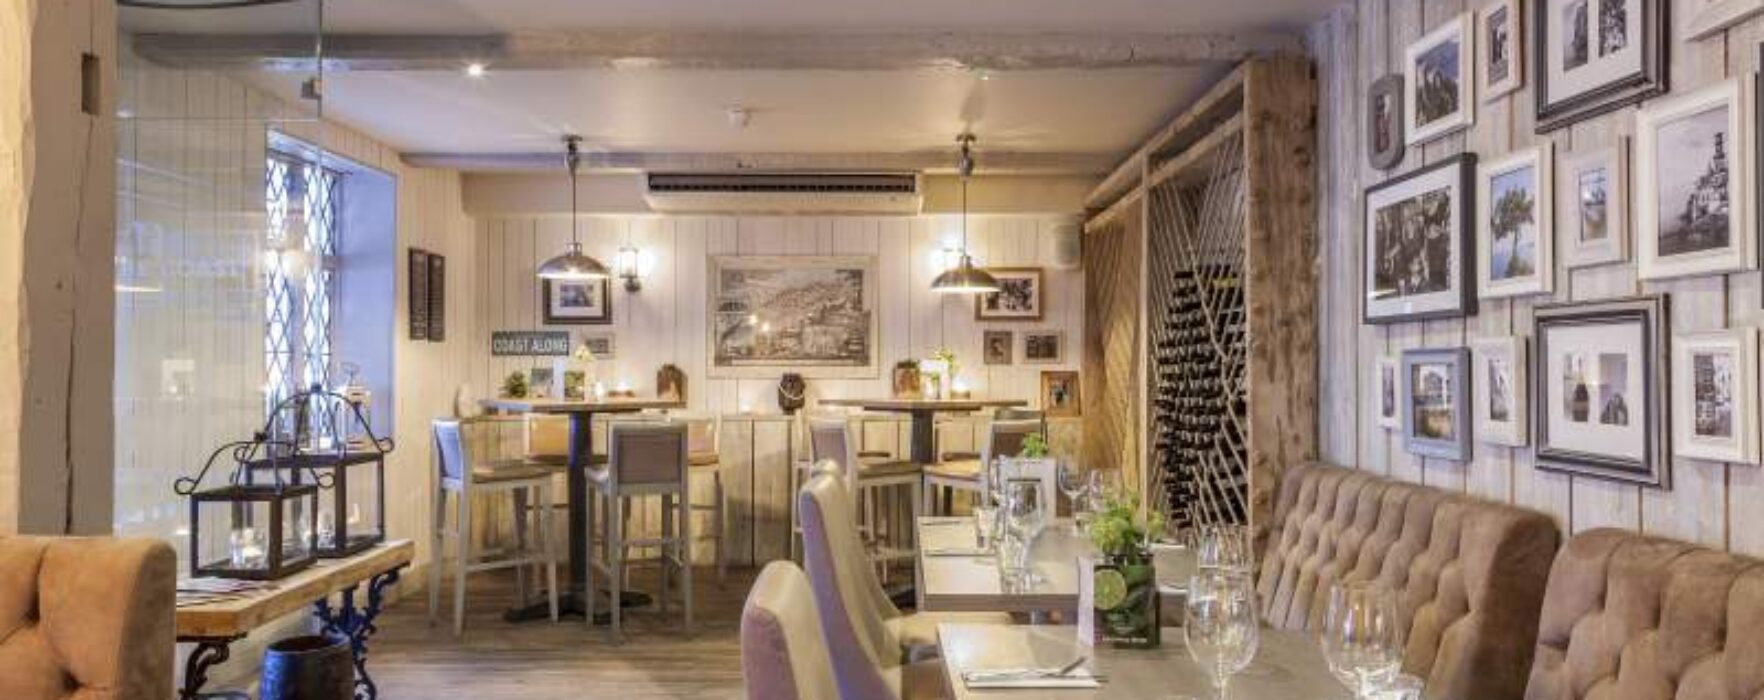 CHESHIRE: Discover a taste of the Amalfi Coast in Prestbury's most popular restaurant The Coast